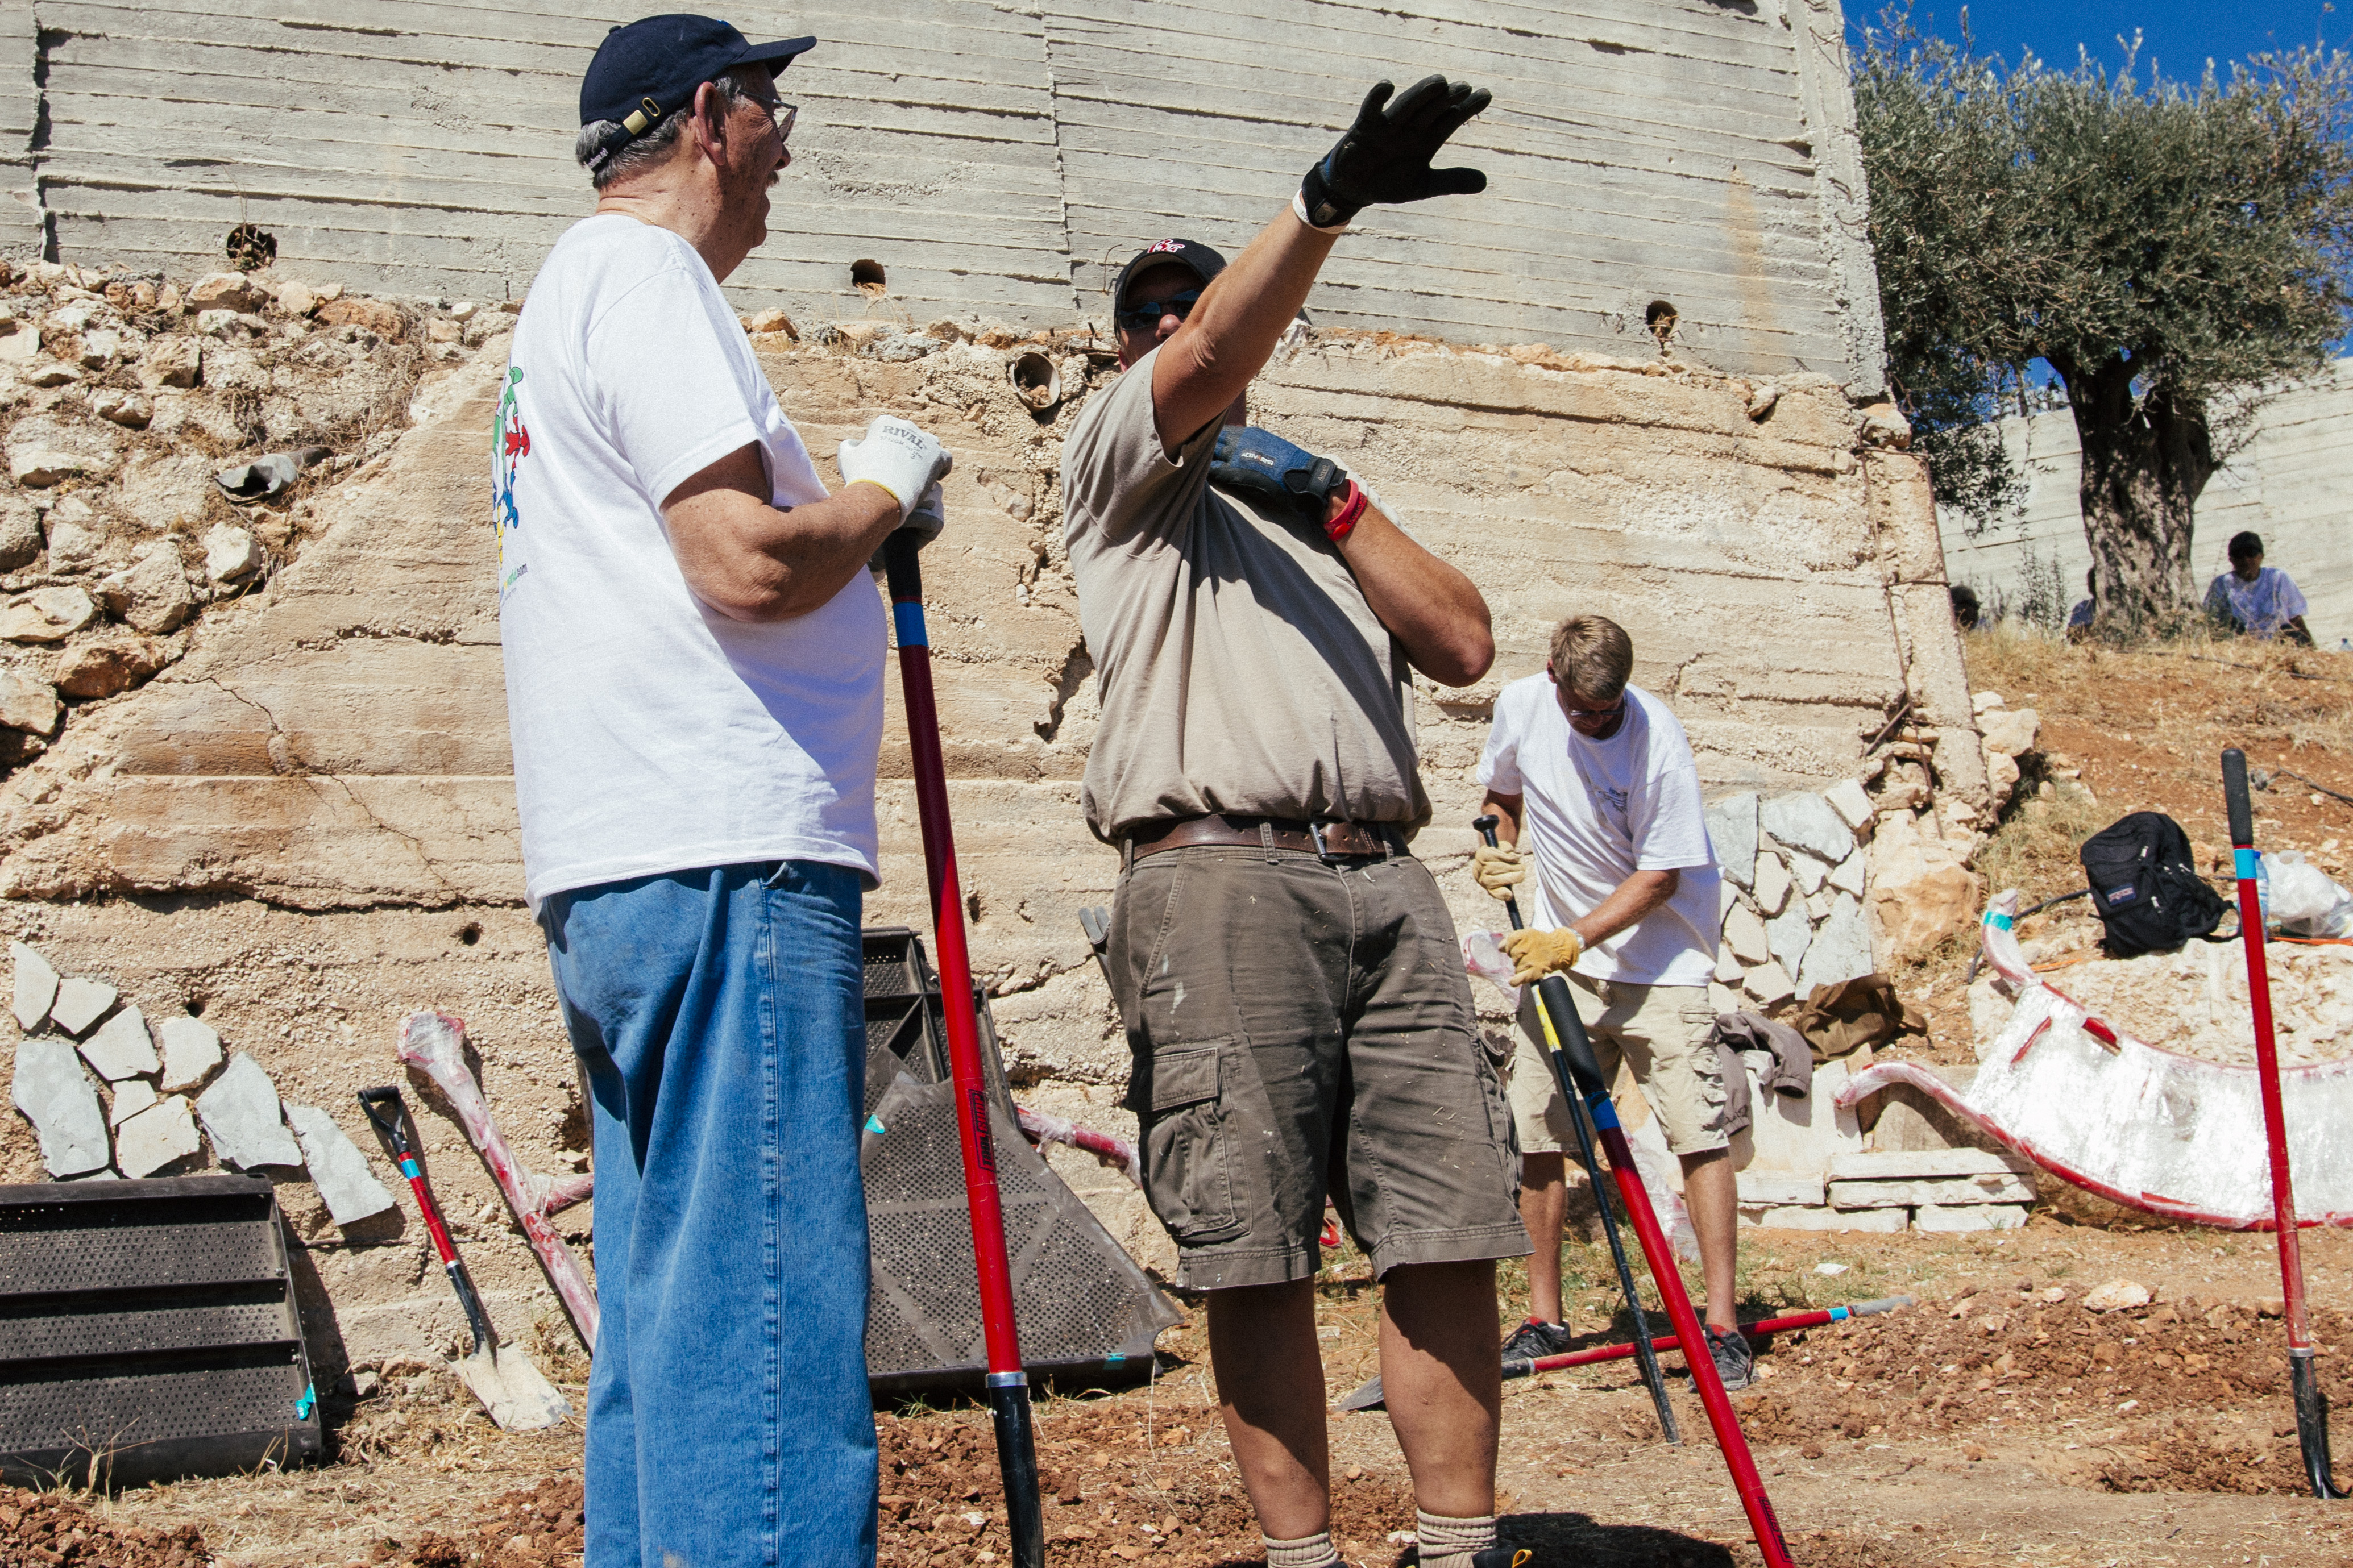 Two Holy Land Missions members, one pointing something out to another during an HLM construction mis